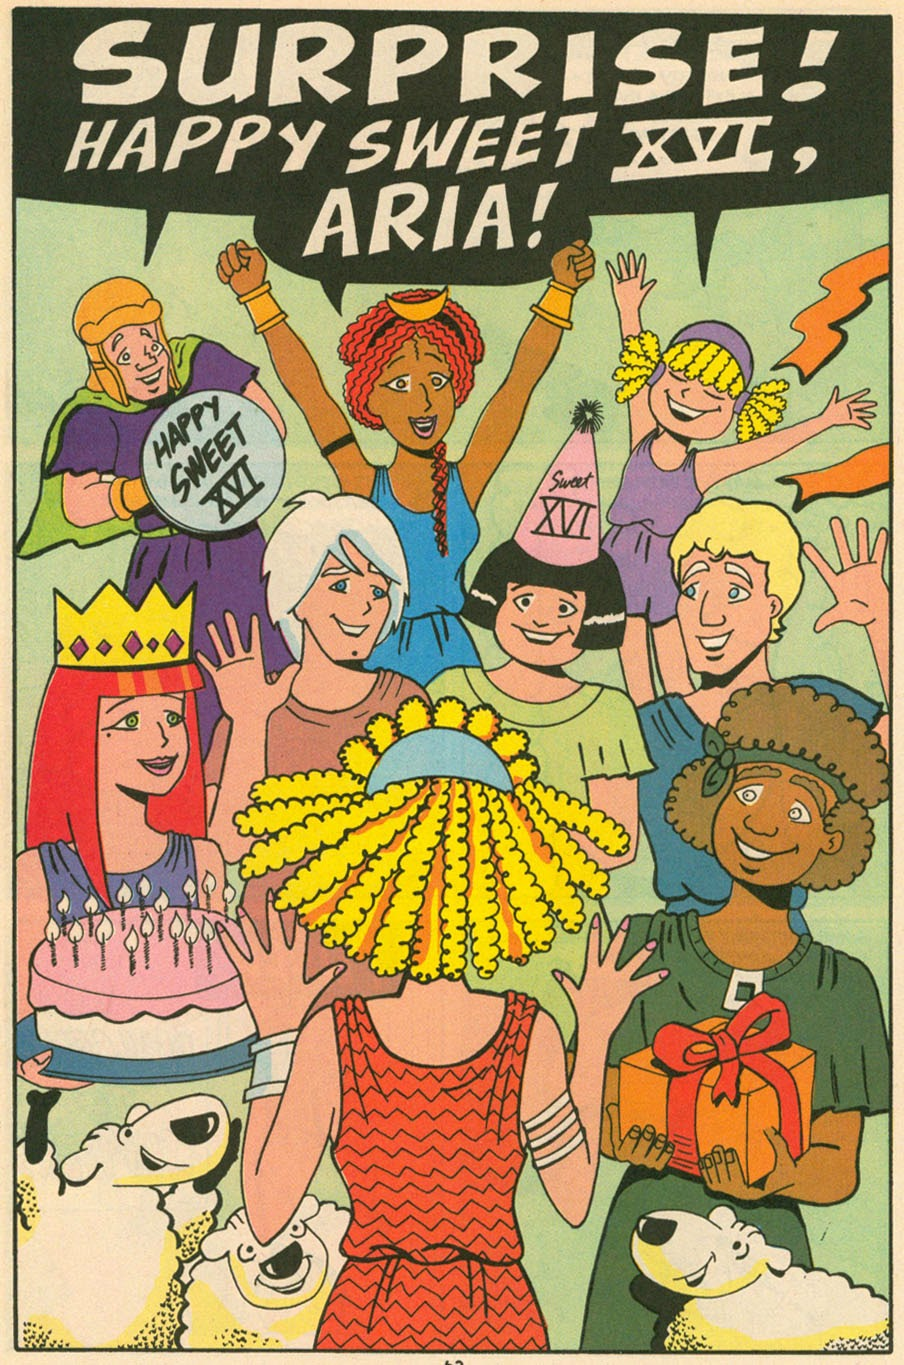 Read online Sweet XVI (Sixteen): Back To School Special comic -  Issue # Full - 54